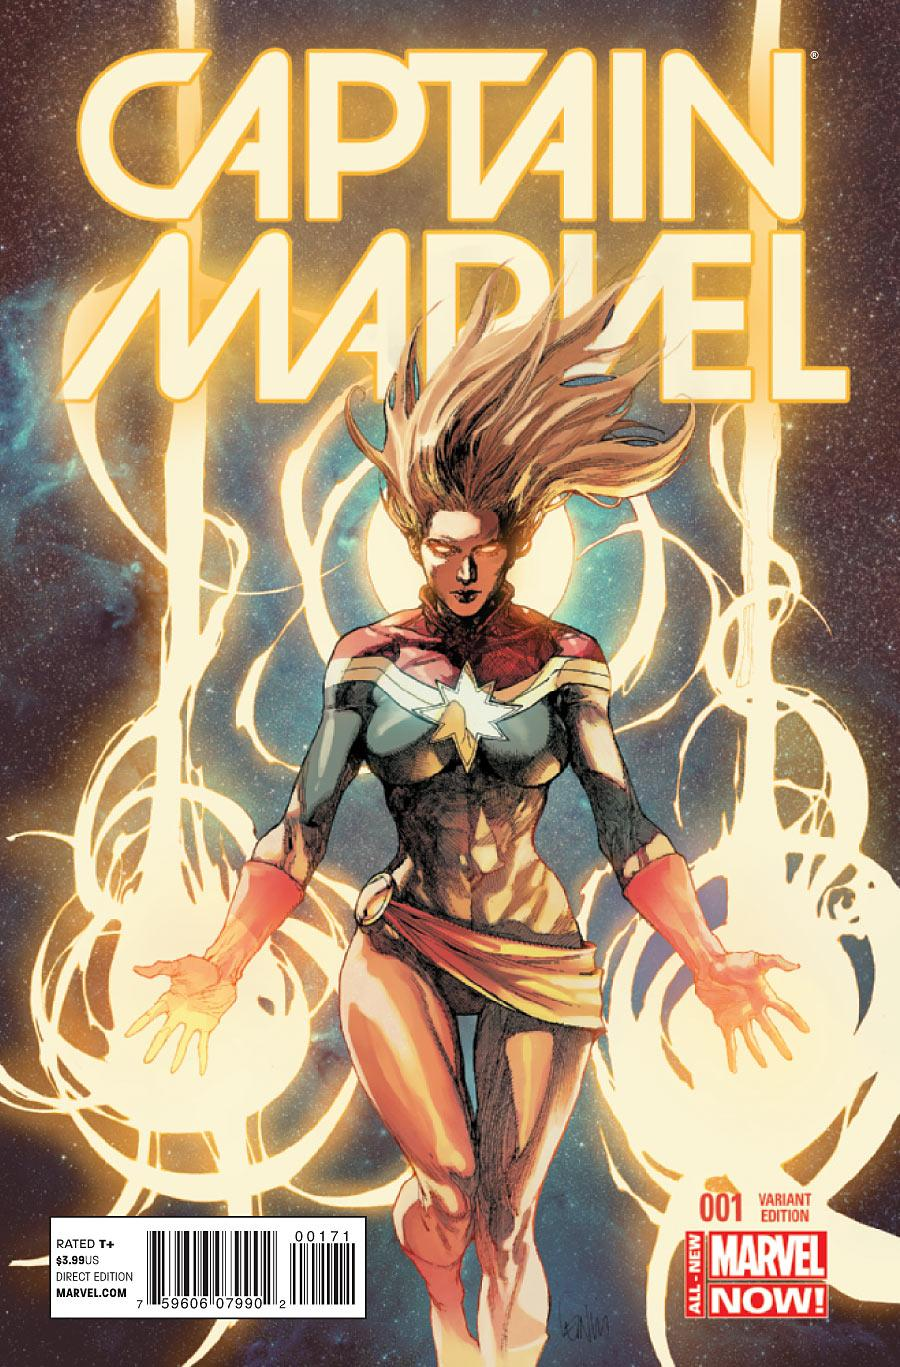 https://vignette.wikia.nocookie.net/marveldatabase/images/8/85/Captain_Marvel_Vol_8_1_Yu_Variant.jpg/revision/latest?cb=20140307002616